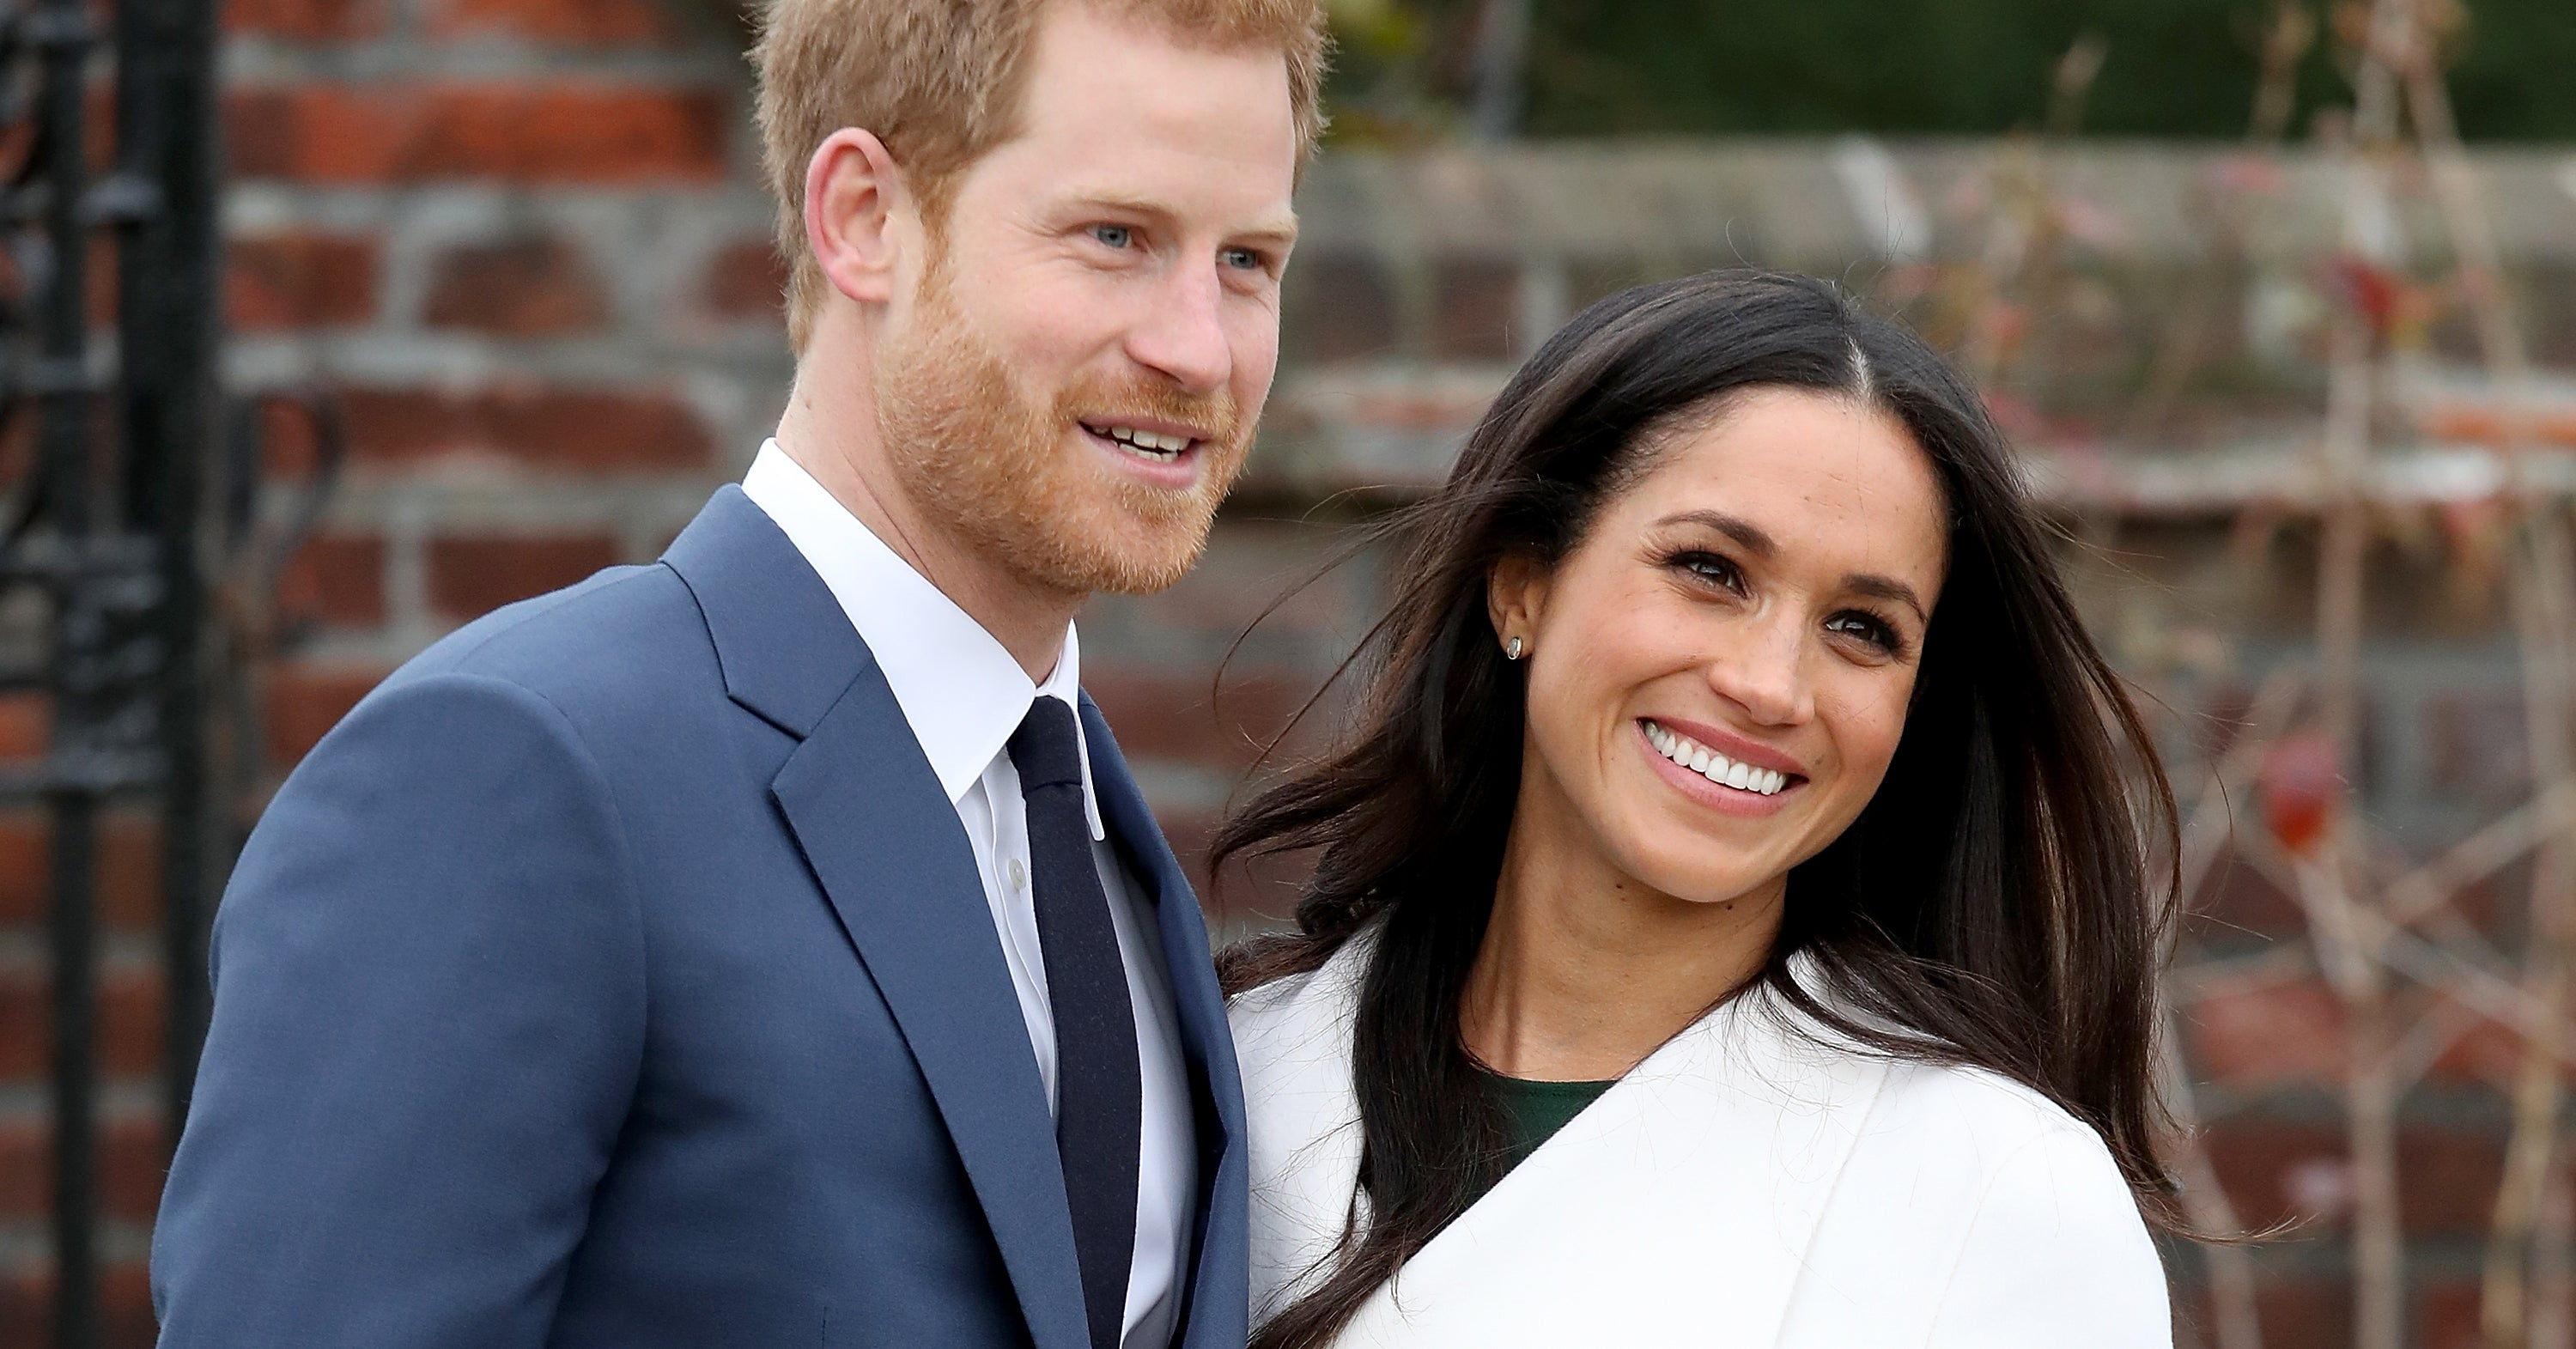 Prince Harry And Meghan Markle S Wedding Won T Be A Bank Holiday People Aren Hy